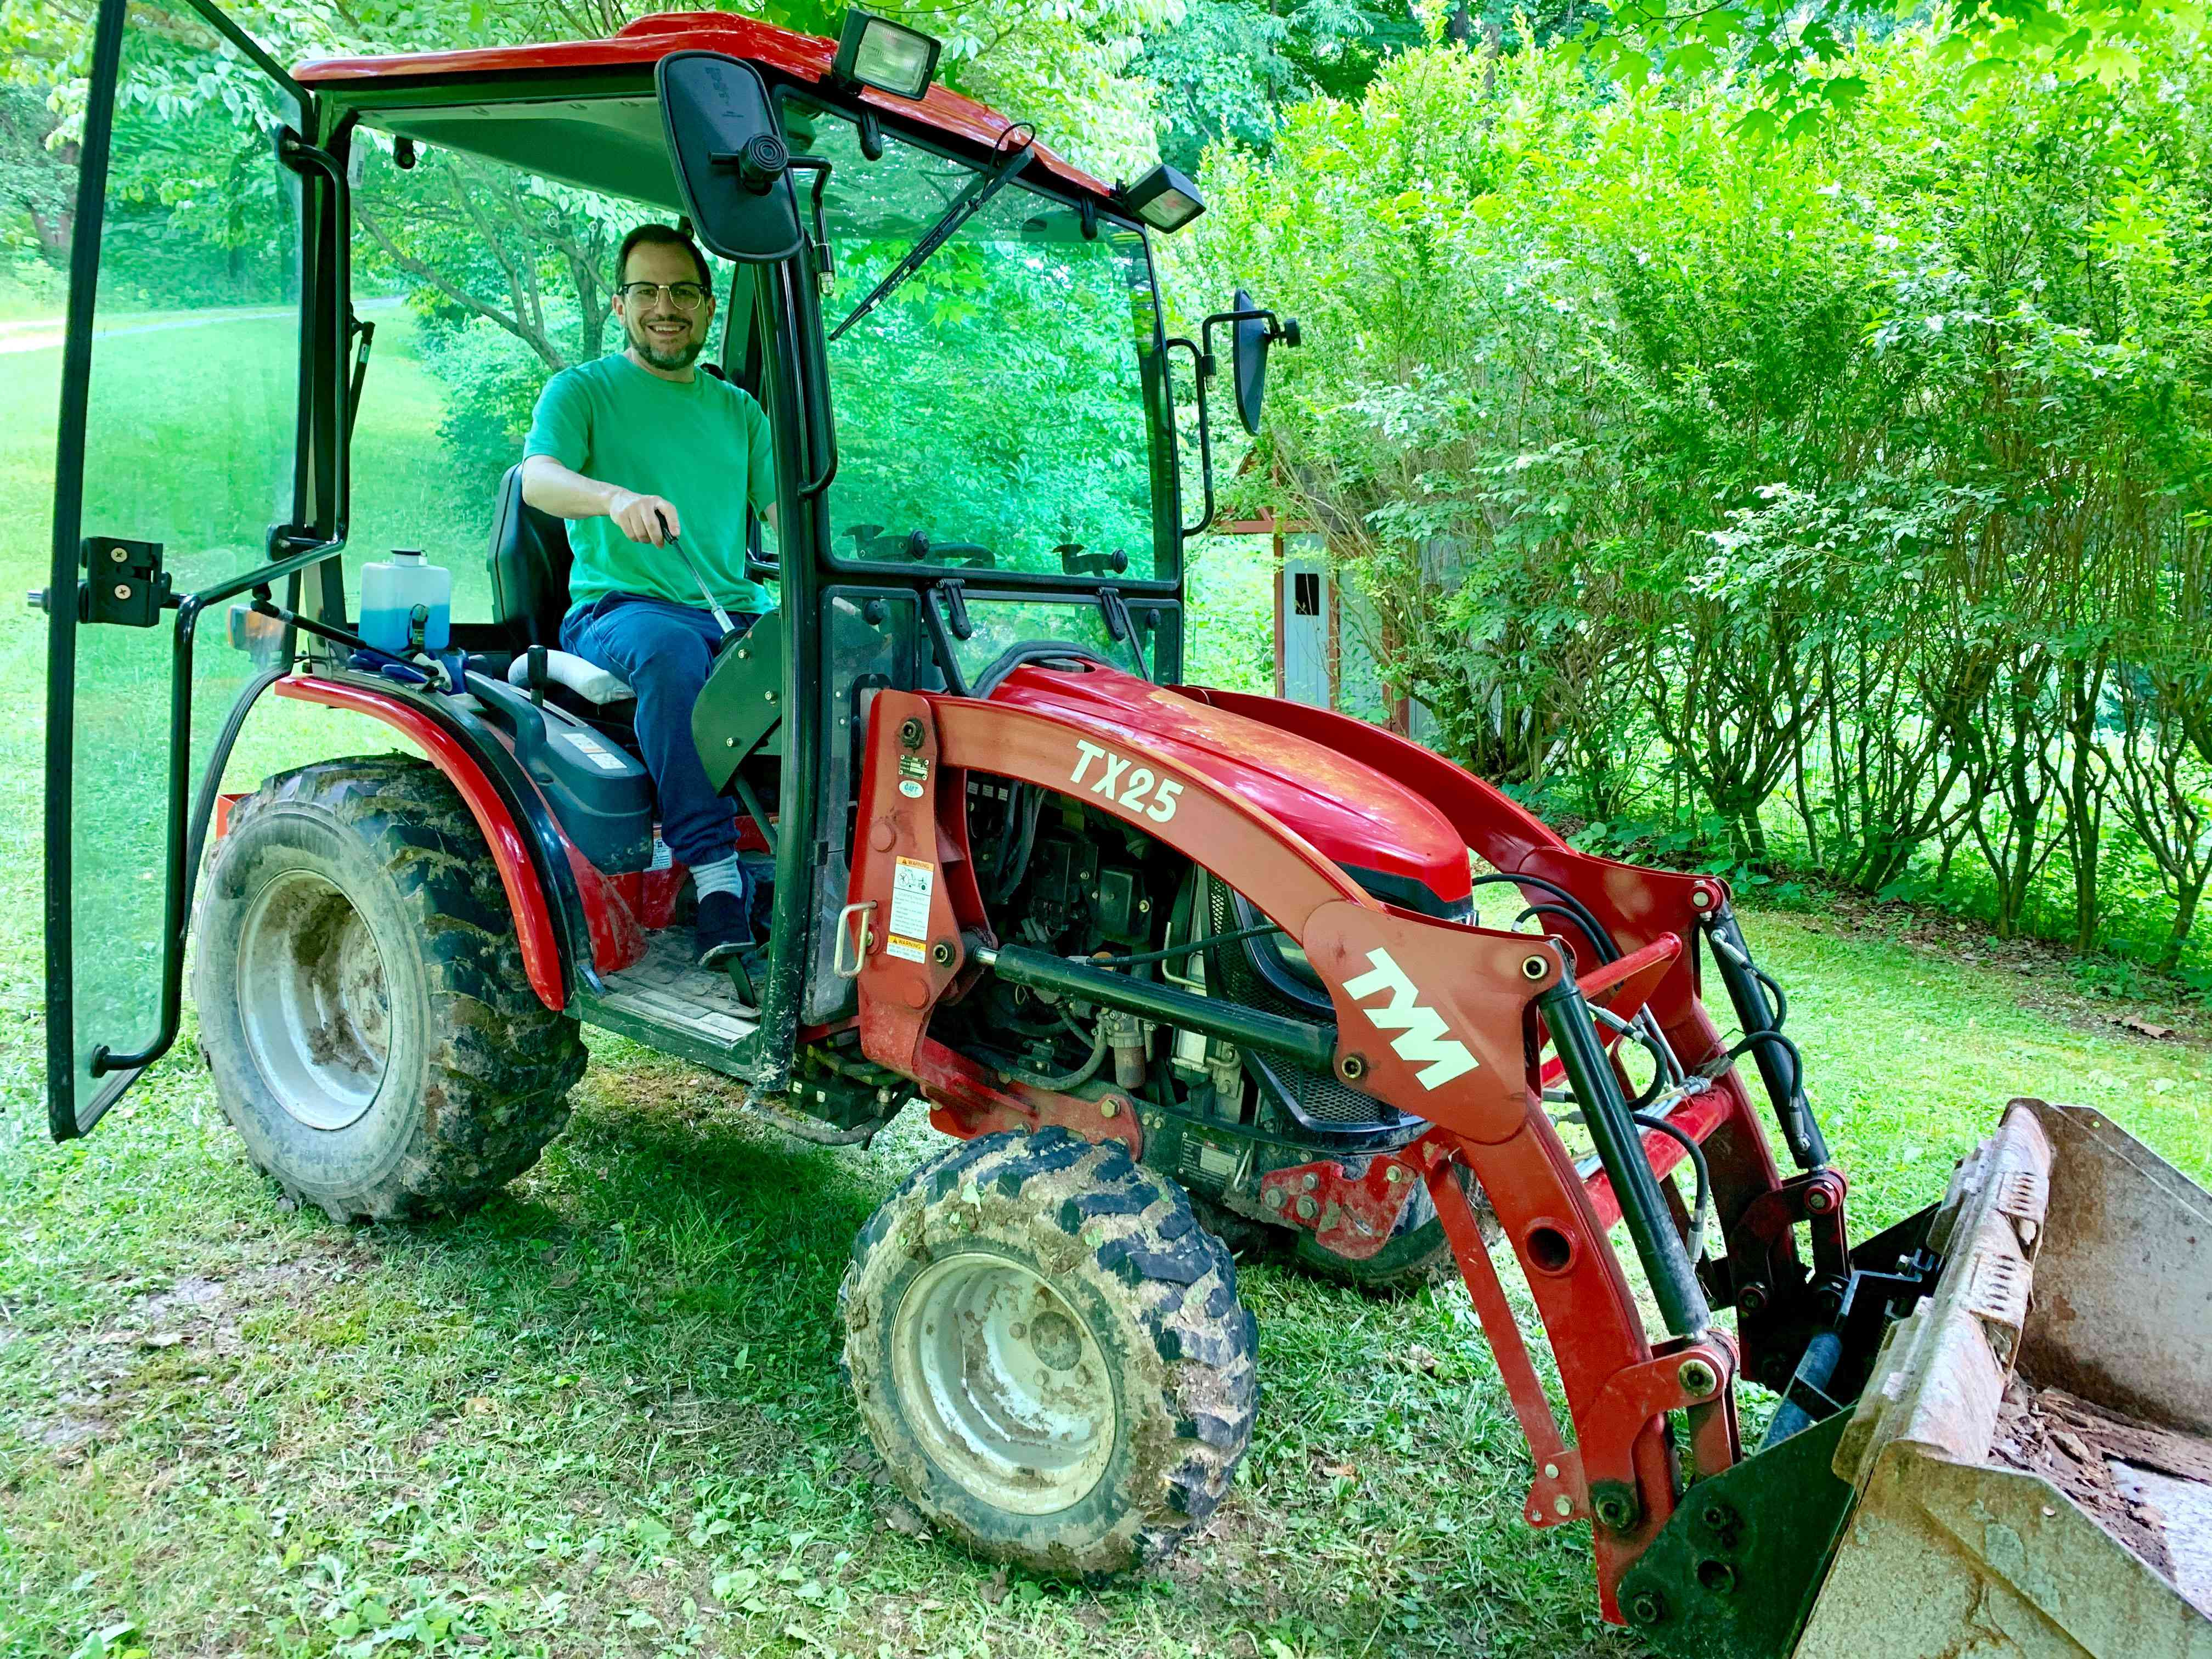 Three months ago, I had no clue what that the TX25 Subcompact Tractor Front-End Loader even existed. Now I'm driving one.